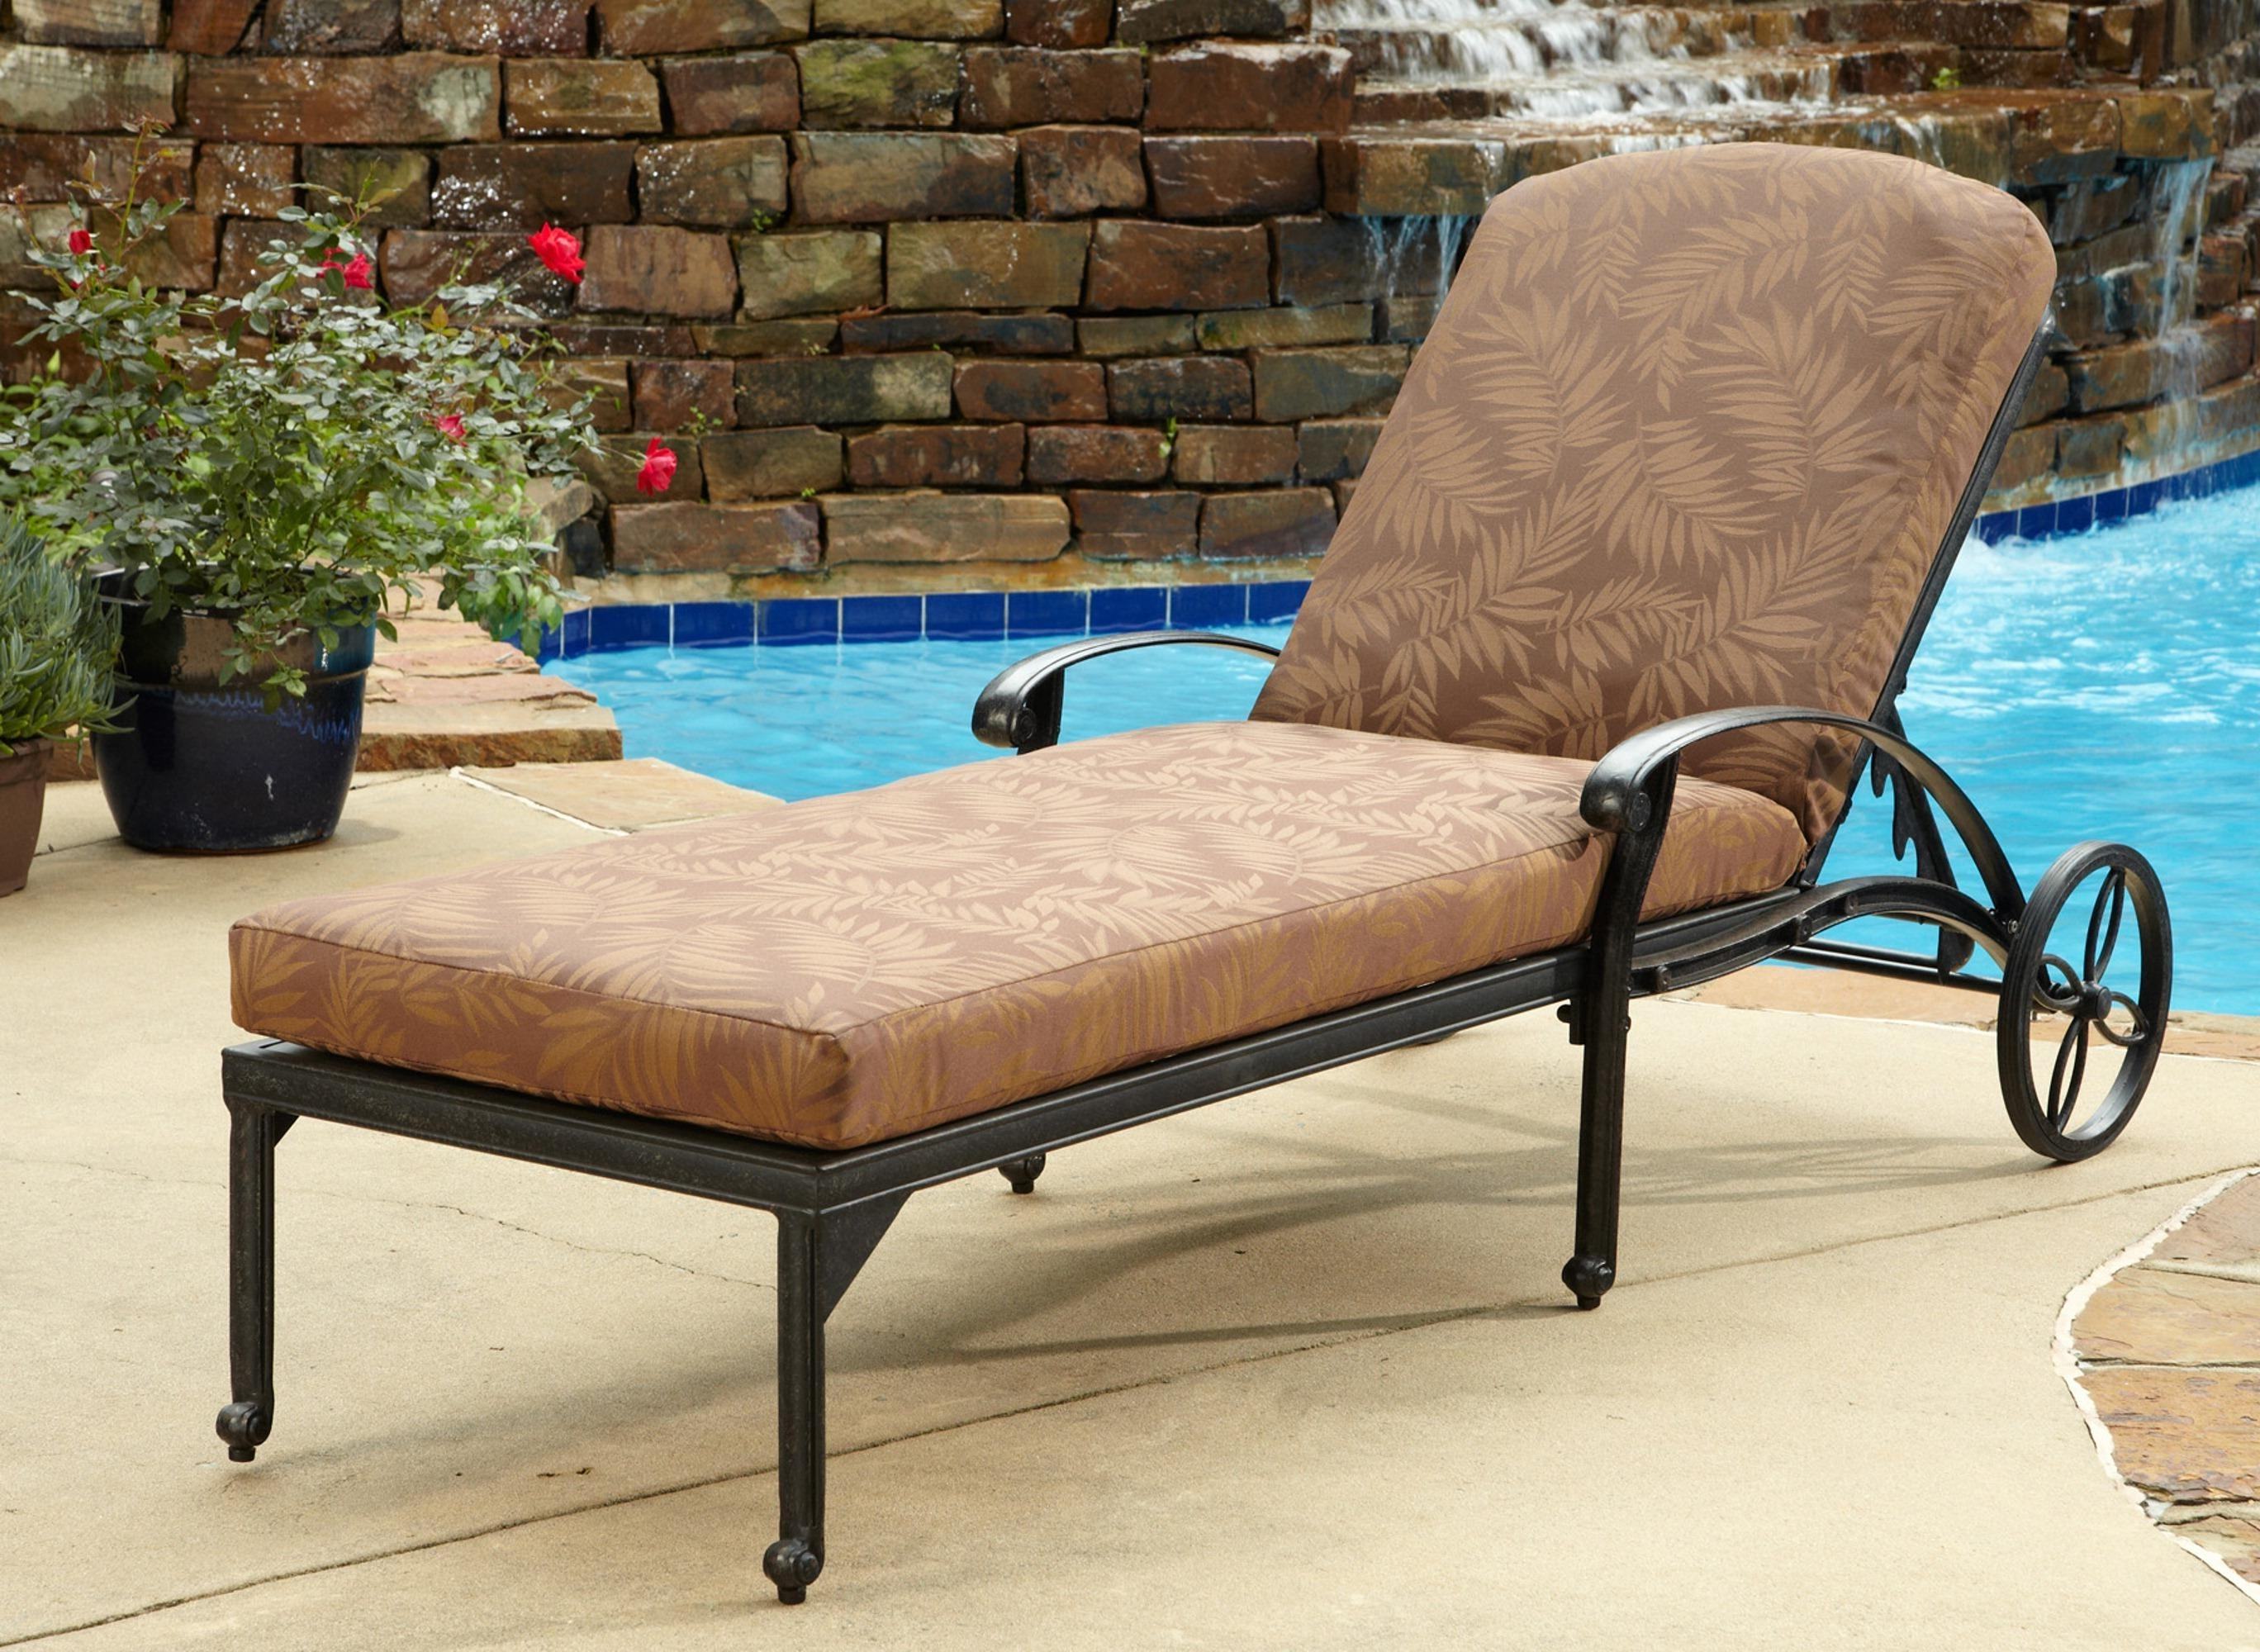 Convertible Chair : Outdoor Chaise Cushions Rattan Furniture Inside Favorite Cheap Outdoor Chaise Lounges (View 5 of 15)